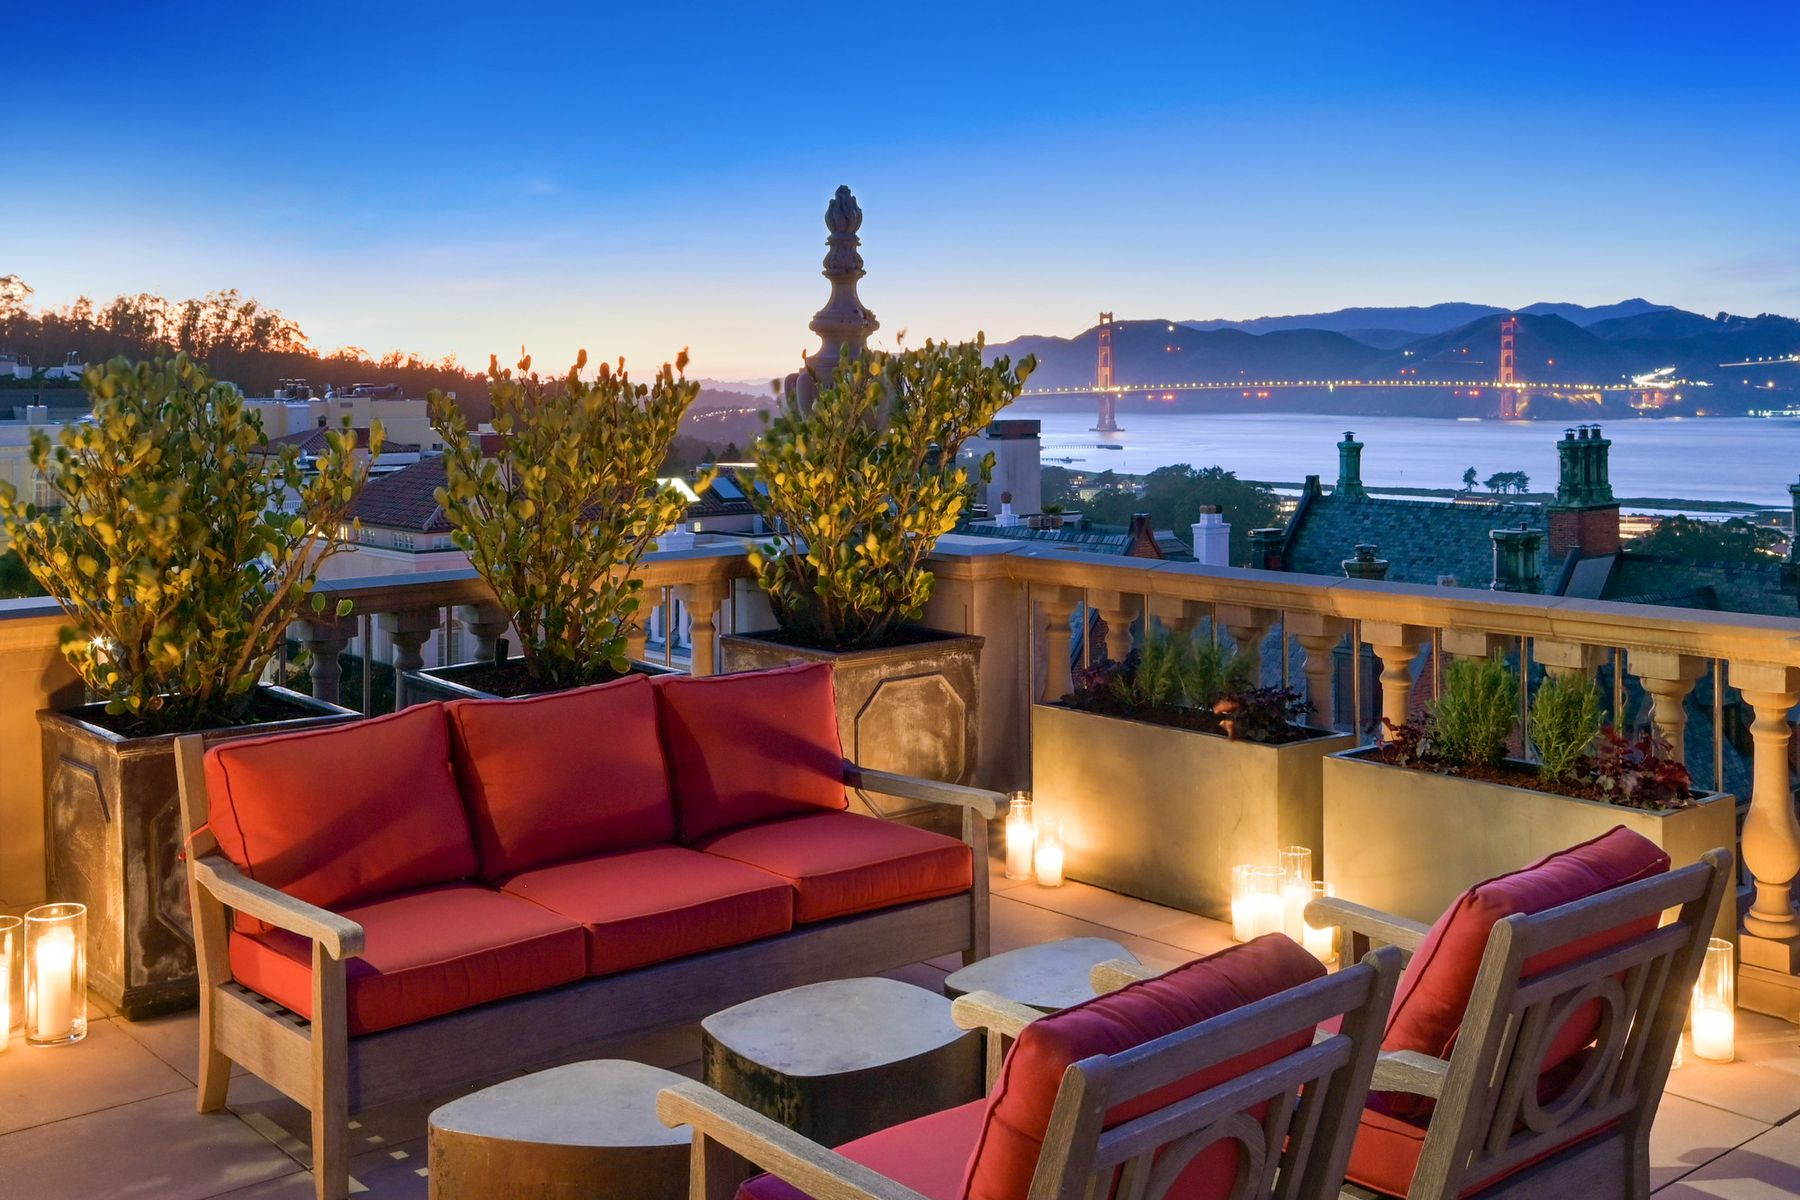 Single Family Homes for Active at Bay View Mansion On Legendary Gold Coast 2799 Broadway San Francisco, California 94115 United States